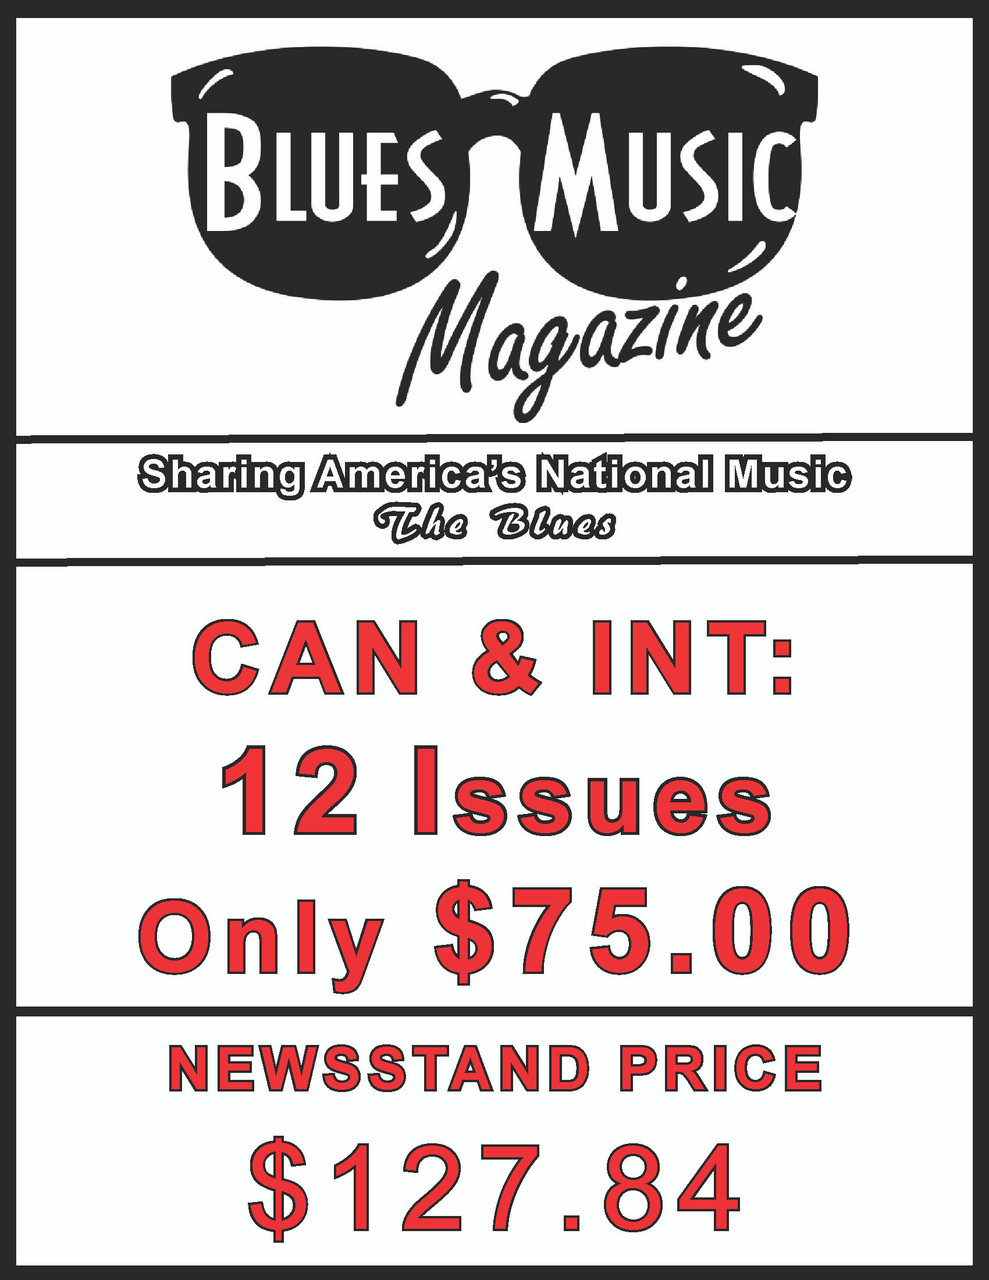 CAN & INT. SUBSCRIBE OR RENEW FOR 12 ISSUES = 3 YEARS